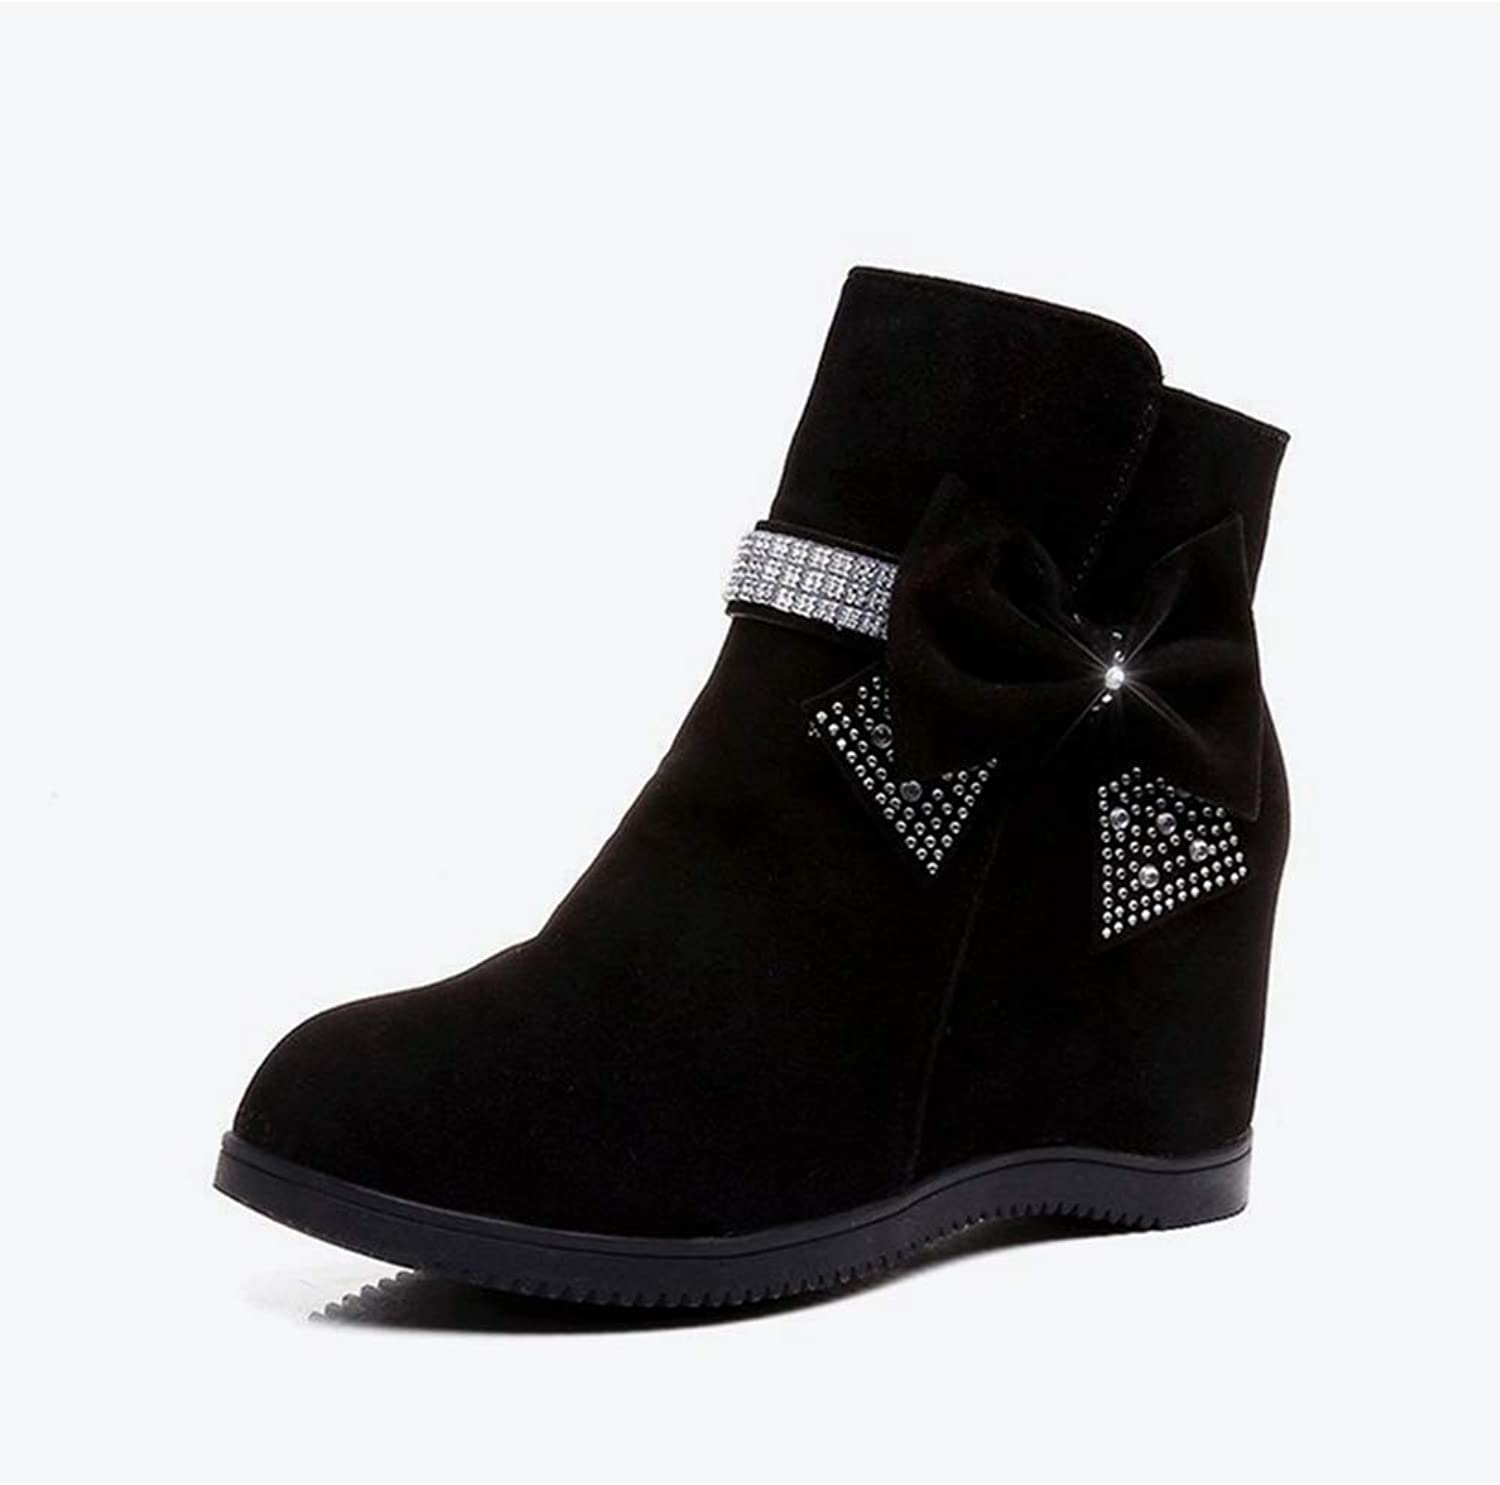 SANOMY Height Increasing Ankle Boots for Women Zip Bling Belt Bowtie Wedge shoes Anti-Skid Riding Booties